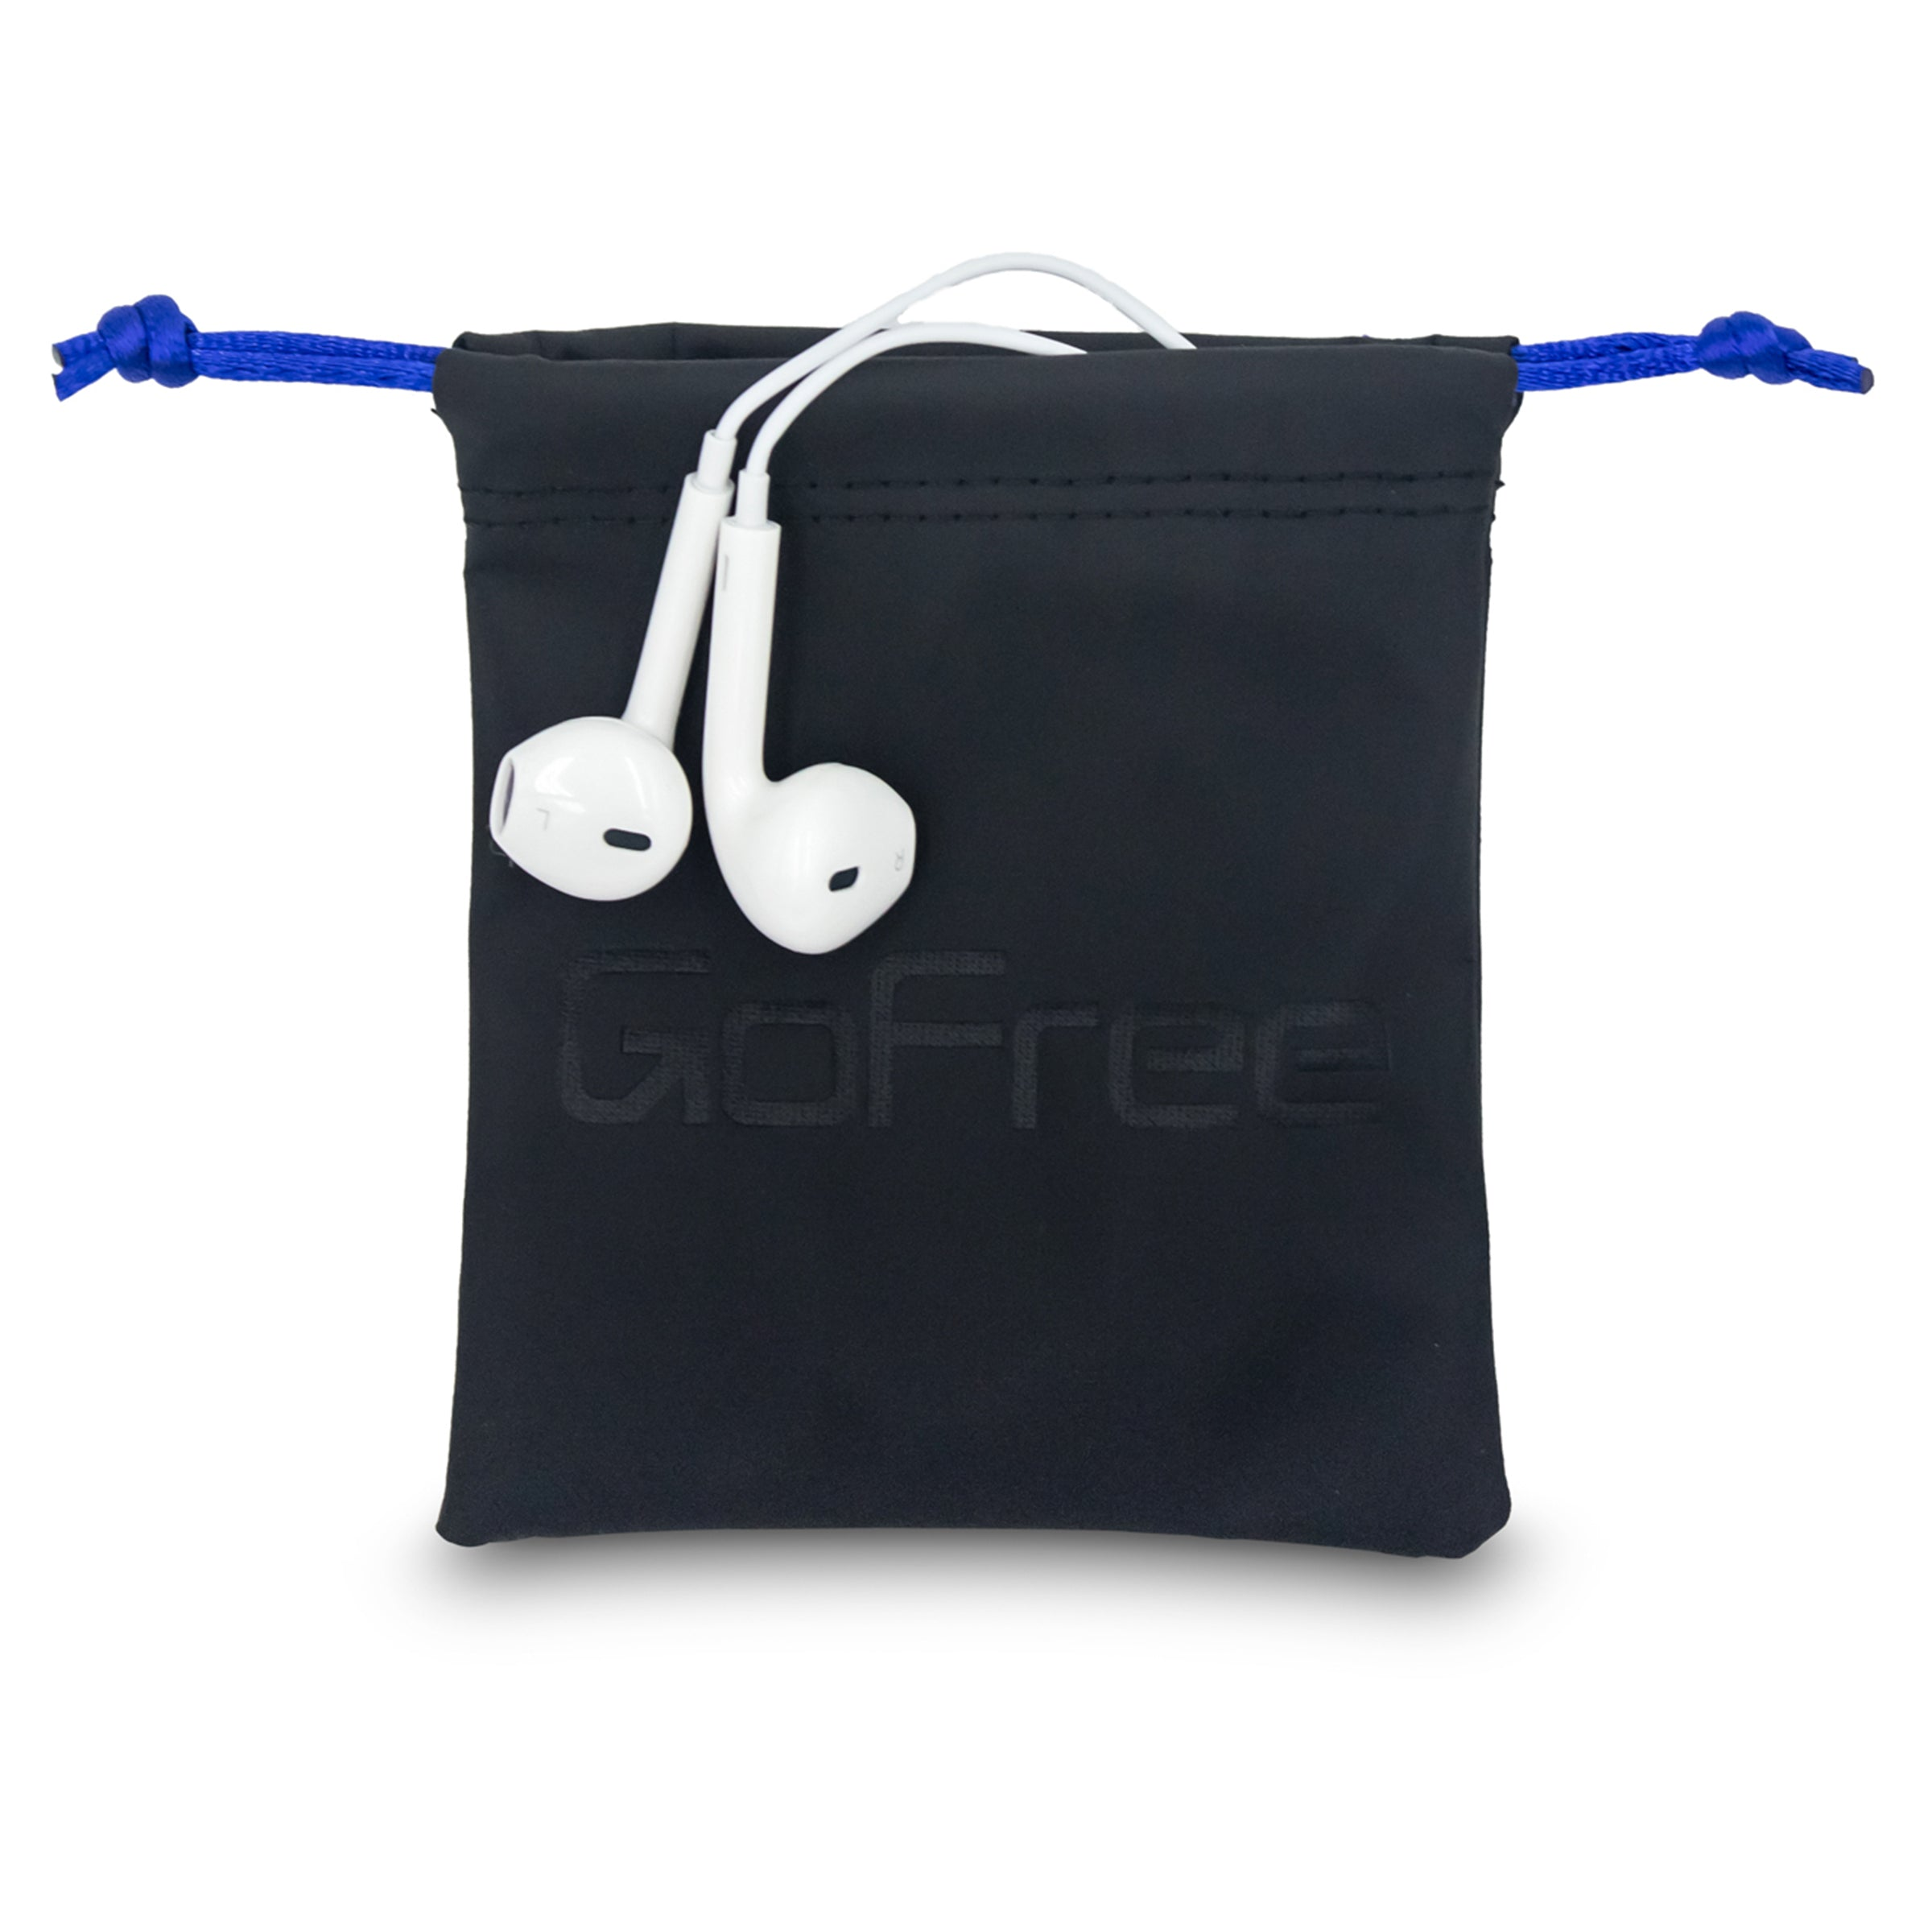 GoFree Drawstring Protection Pouch Bag for Earphones, Pen Drives, SD cards (Midnight Black)